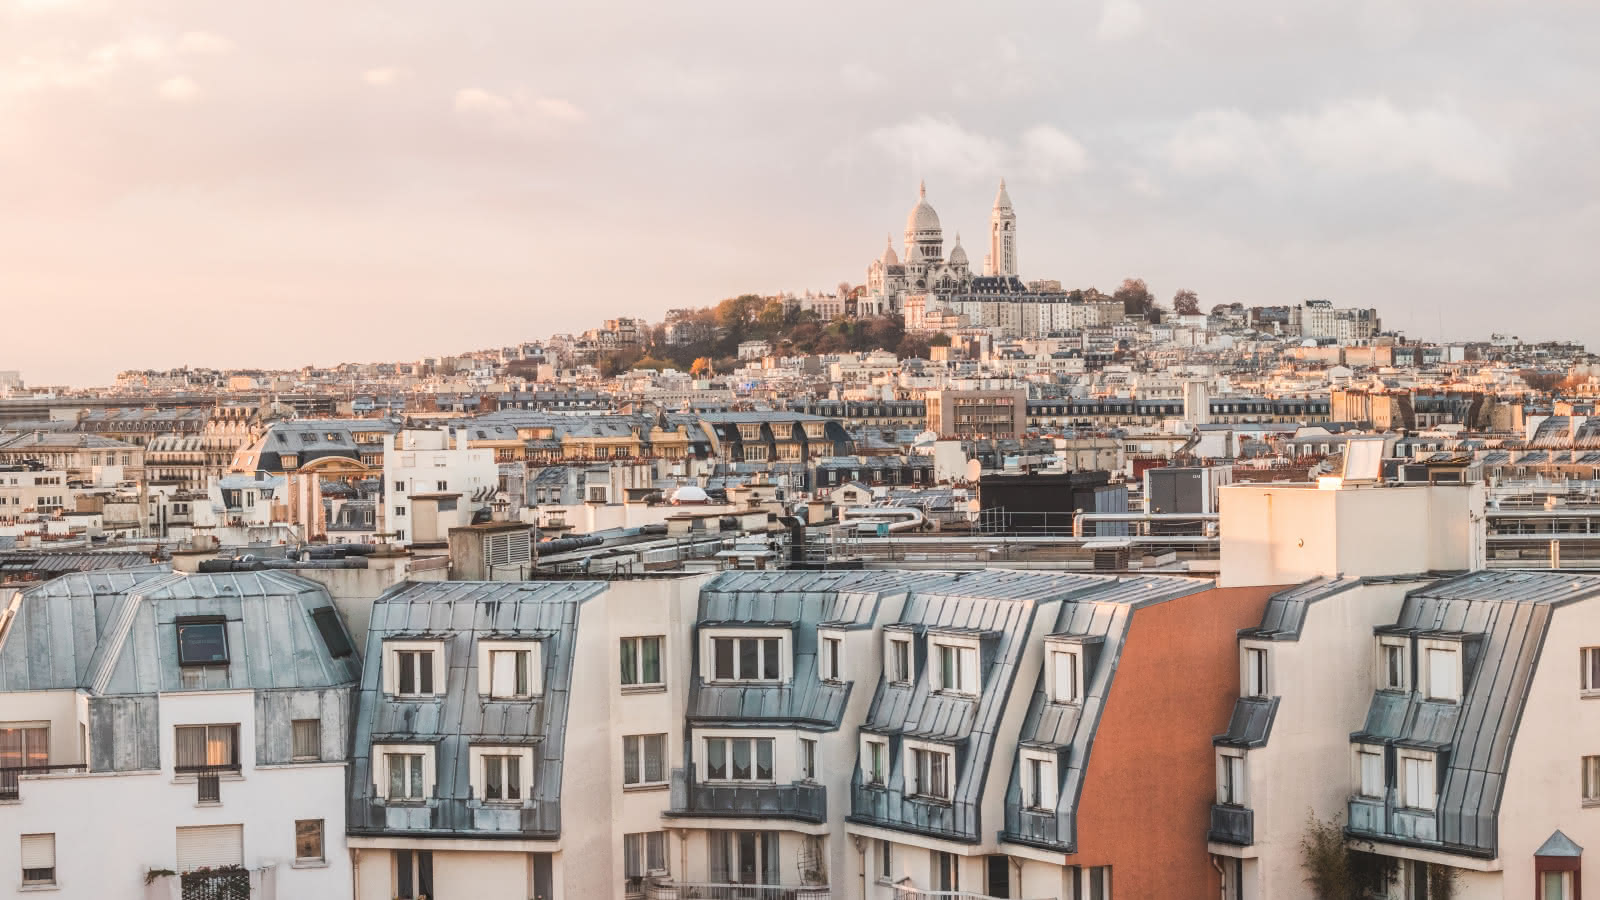 Montmartre District & Sacré-Coeur